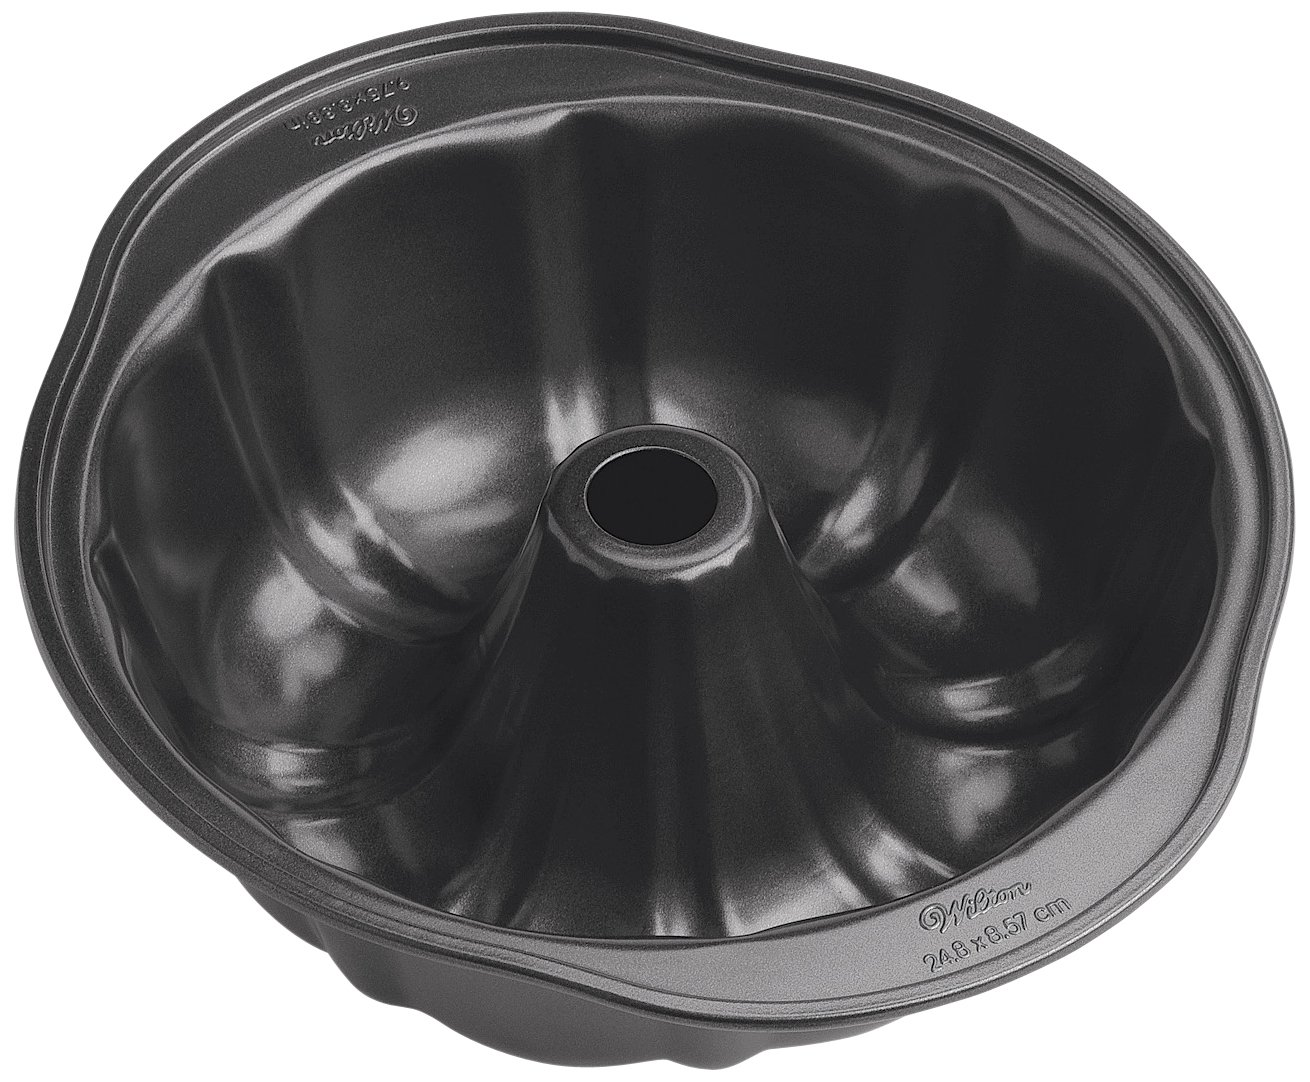 Bundt cake pans for sale - Wilton 2105 6803 Perfect Results Nonstick Fluted Tube Pan Standard